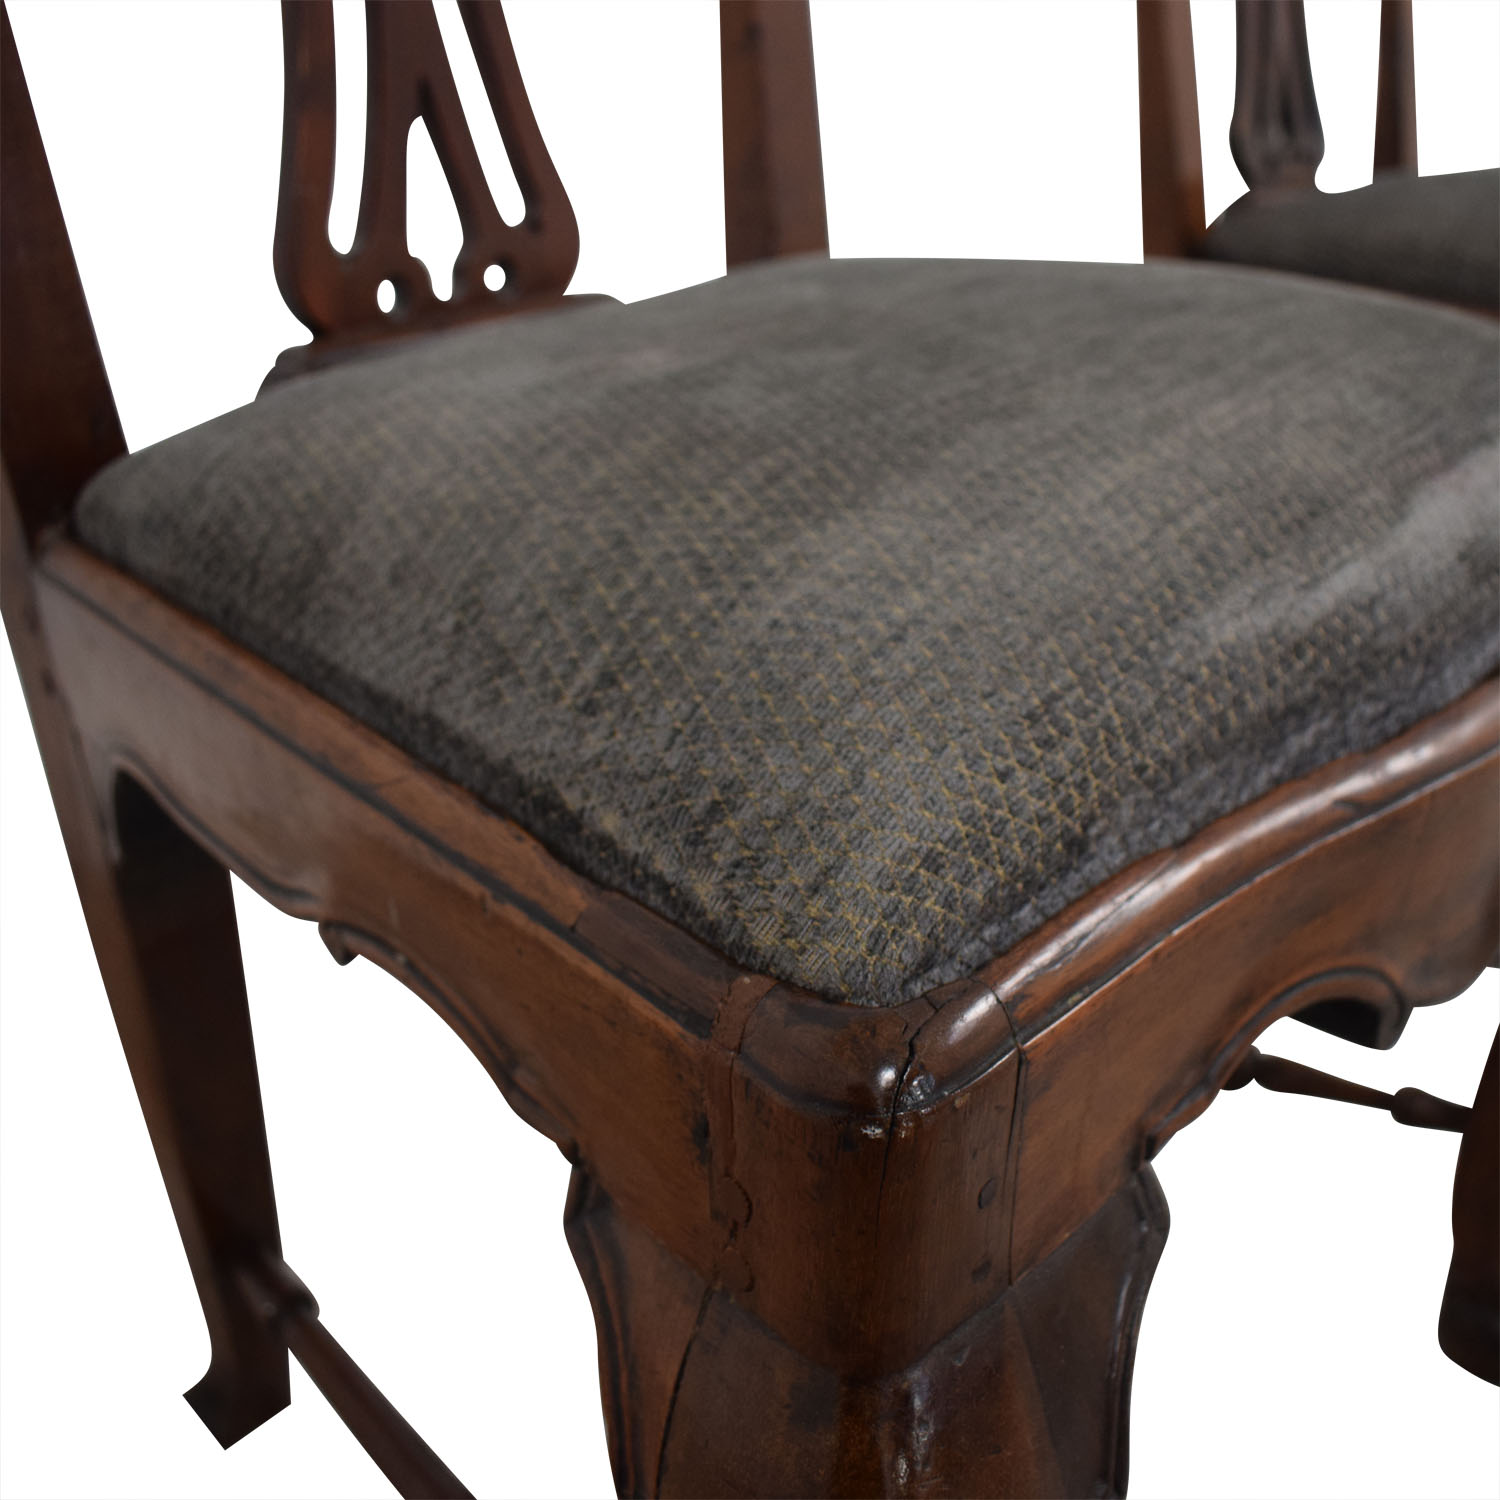 Fabulous 90 Off Vintage Dining Chair Set Chairs Alphanode Cool Chair Designs And Ideas Alphanodeonline